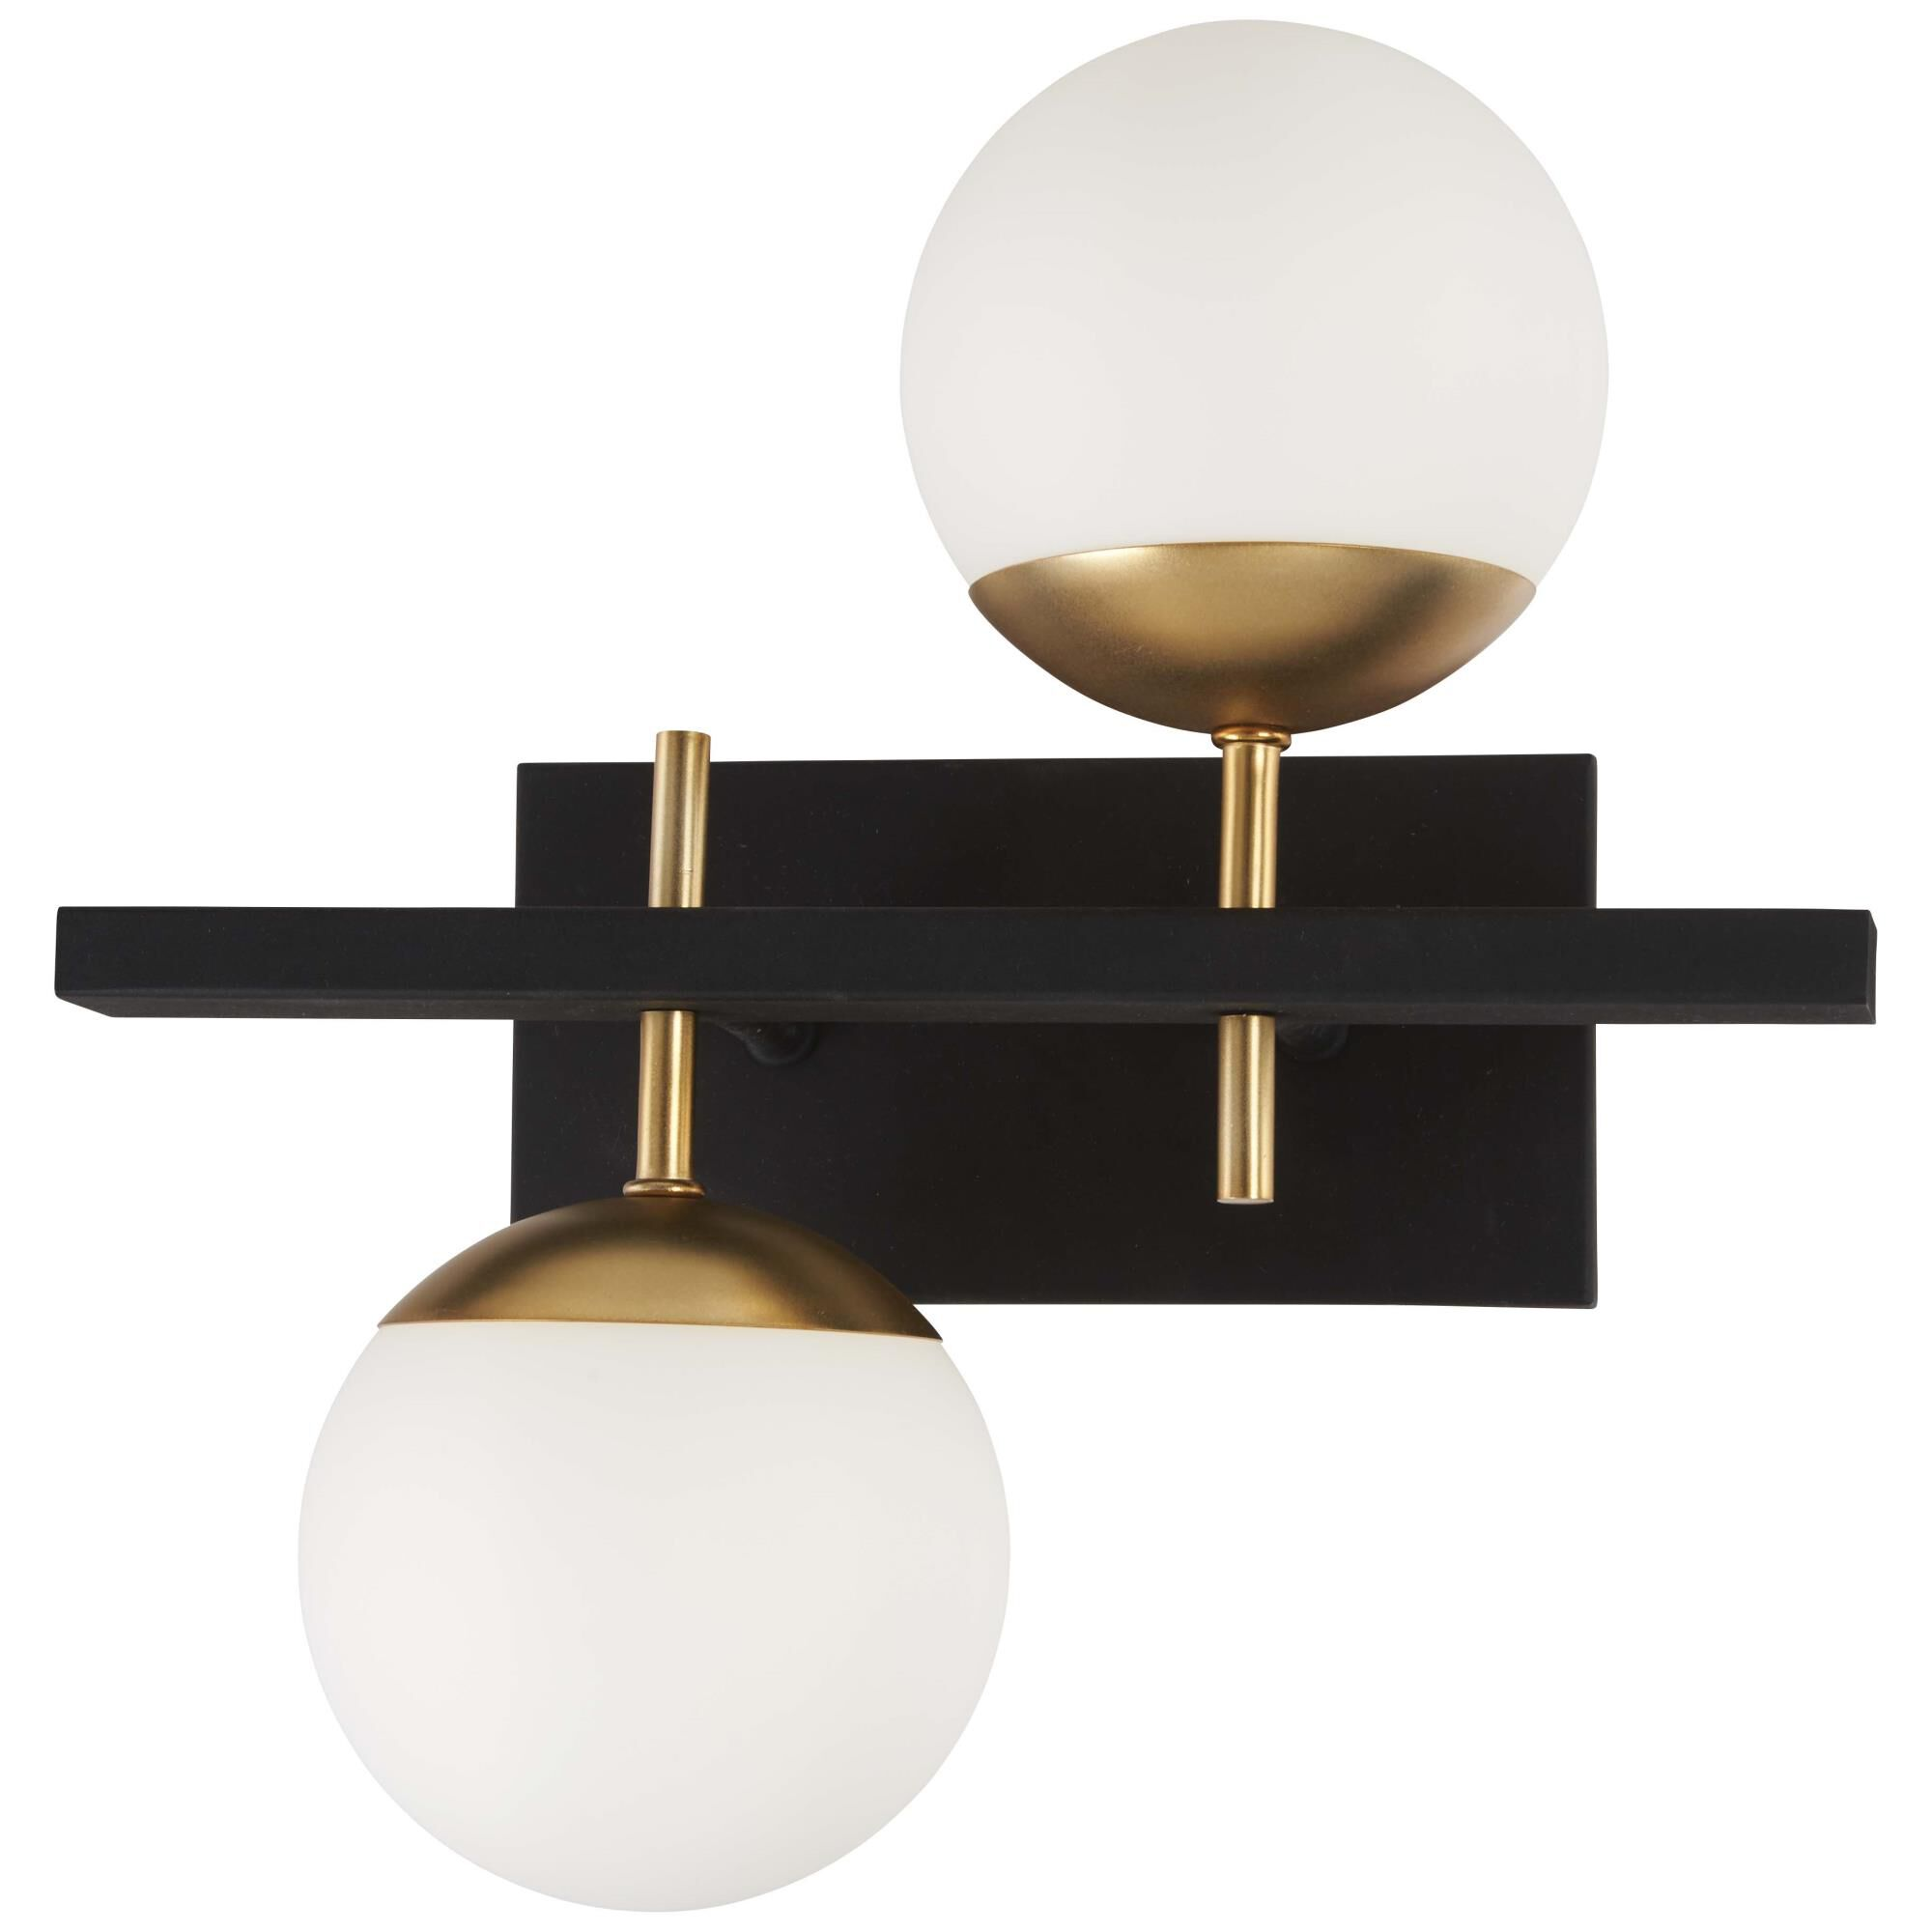 Kovacs Alluria 16 Inch 2 Light Bath Vanity Light Alluria - P1351-618 - Transitional